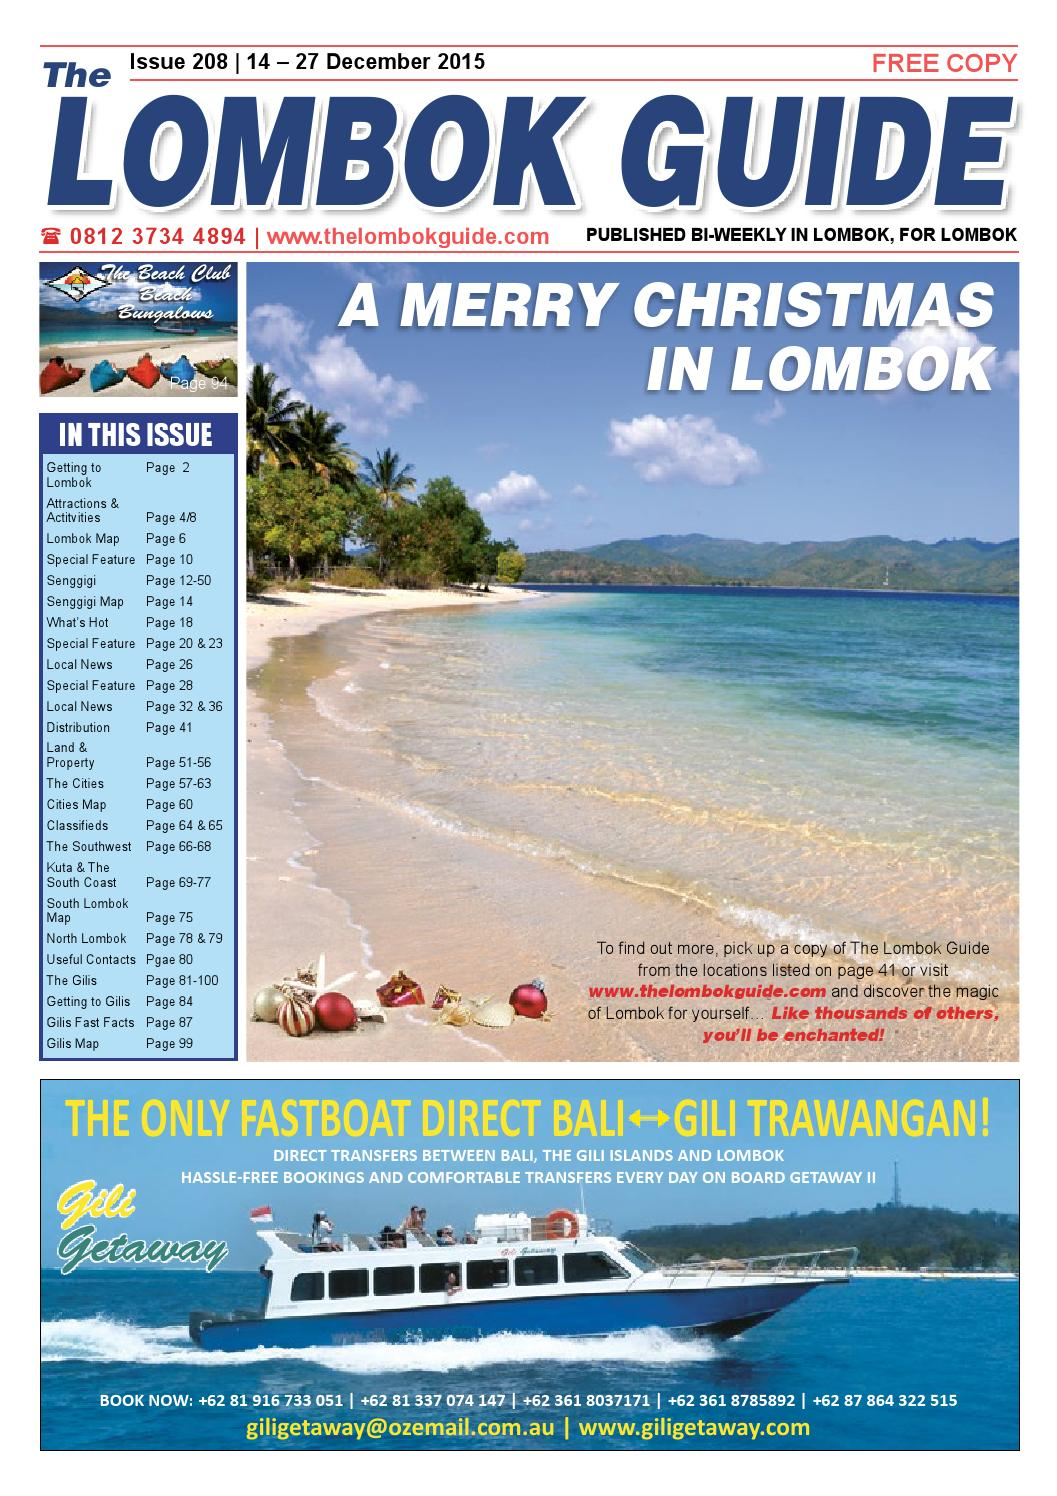 The Lombok Guide Issue 208 By Issuu Gajah Duduk Fame Merah